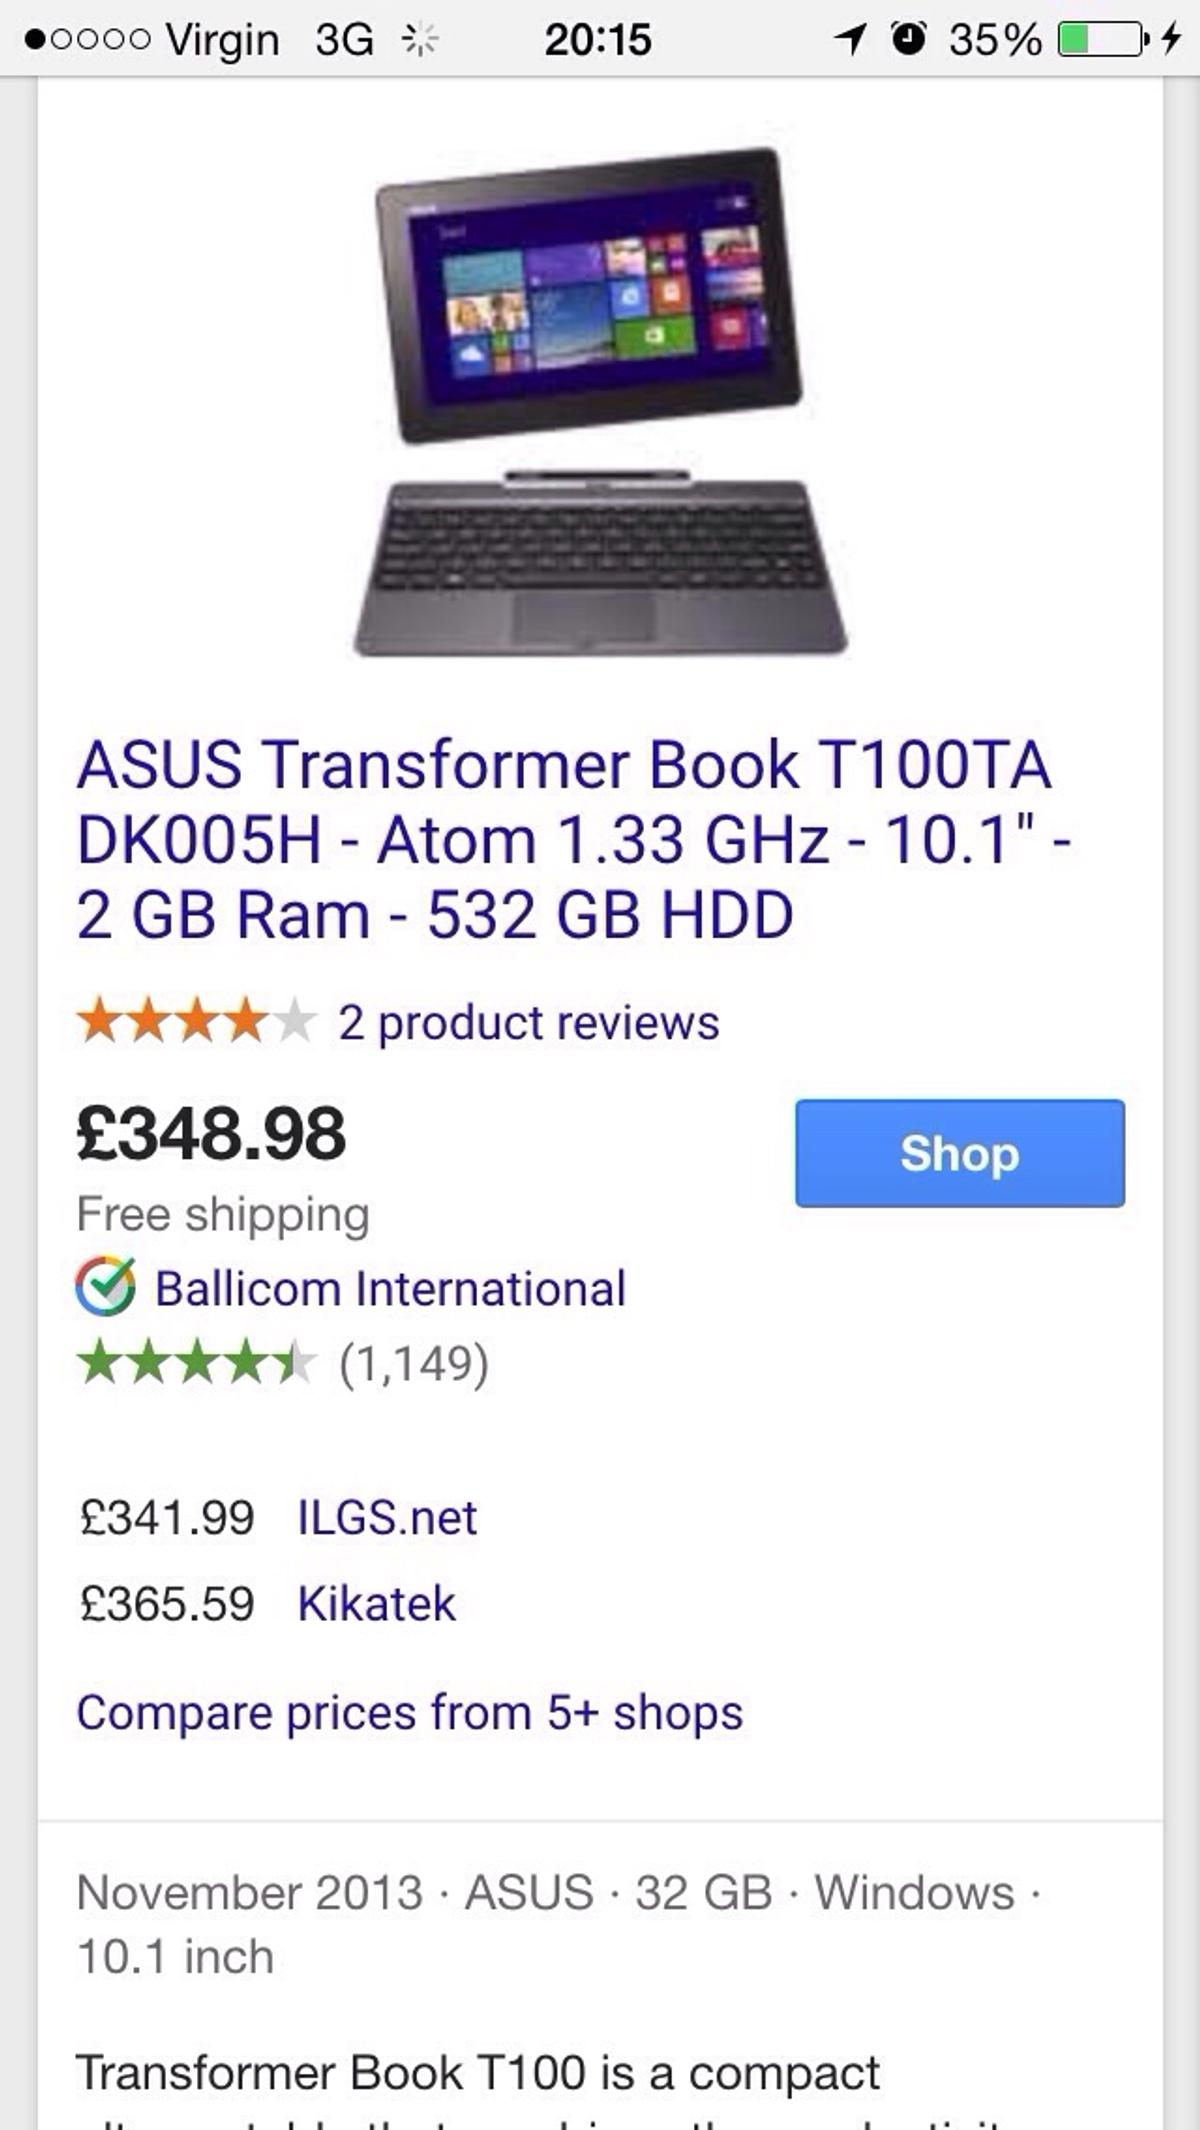 Asus transformer Windows 8 tablet / laptop in TW9 London for